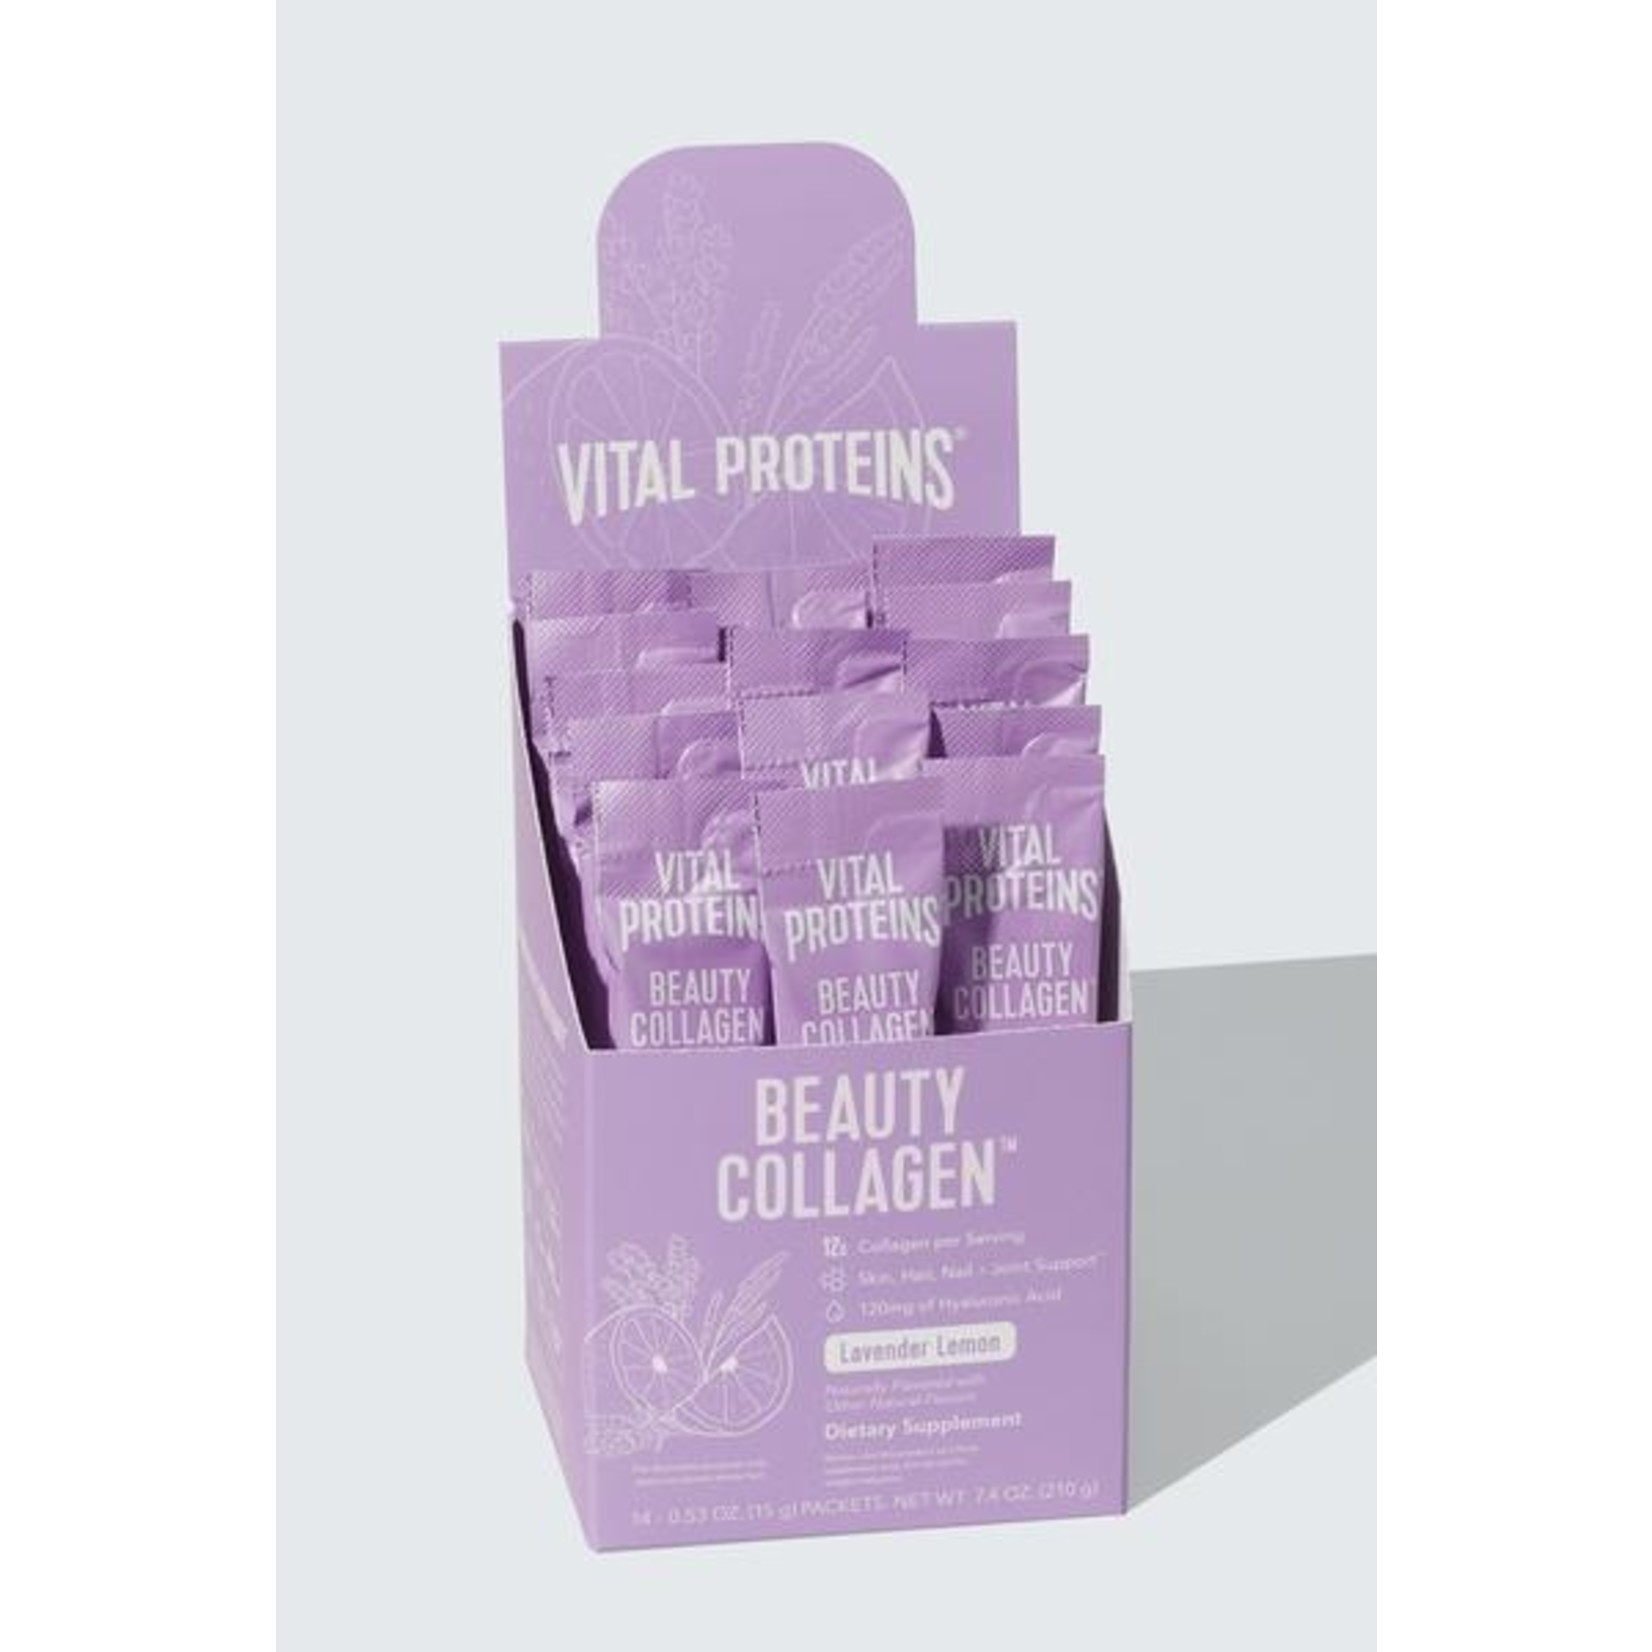 Vital Proteins Beauty Collagen Lavender Lemon Box